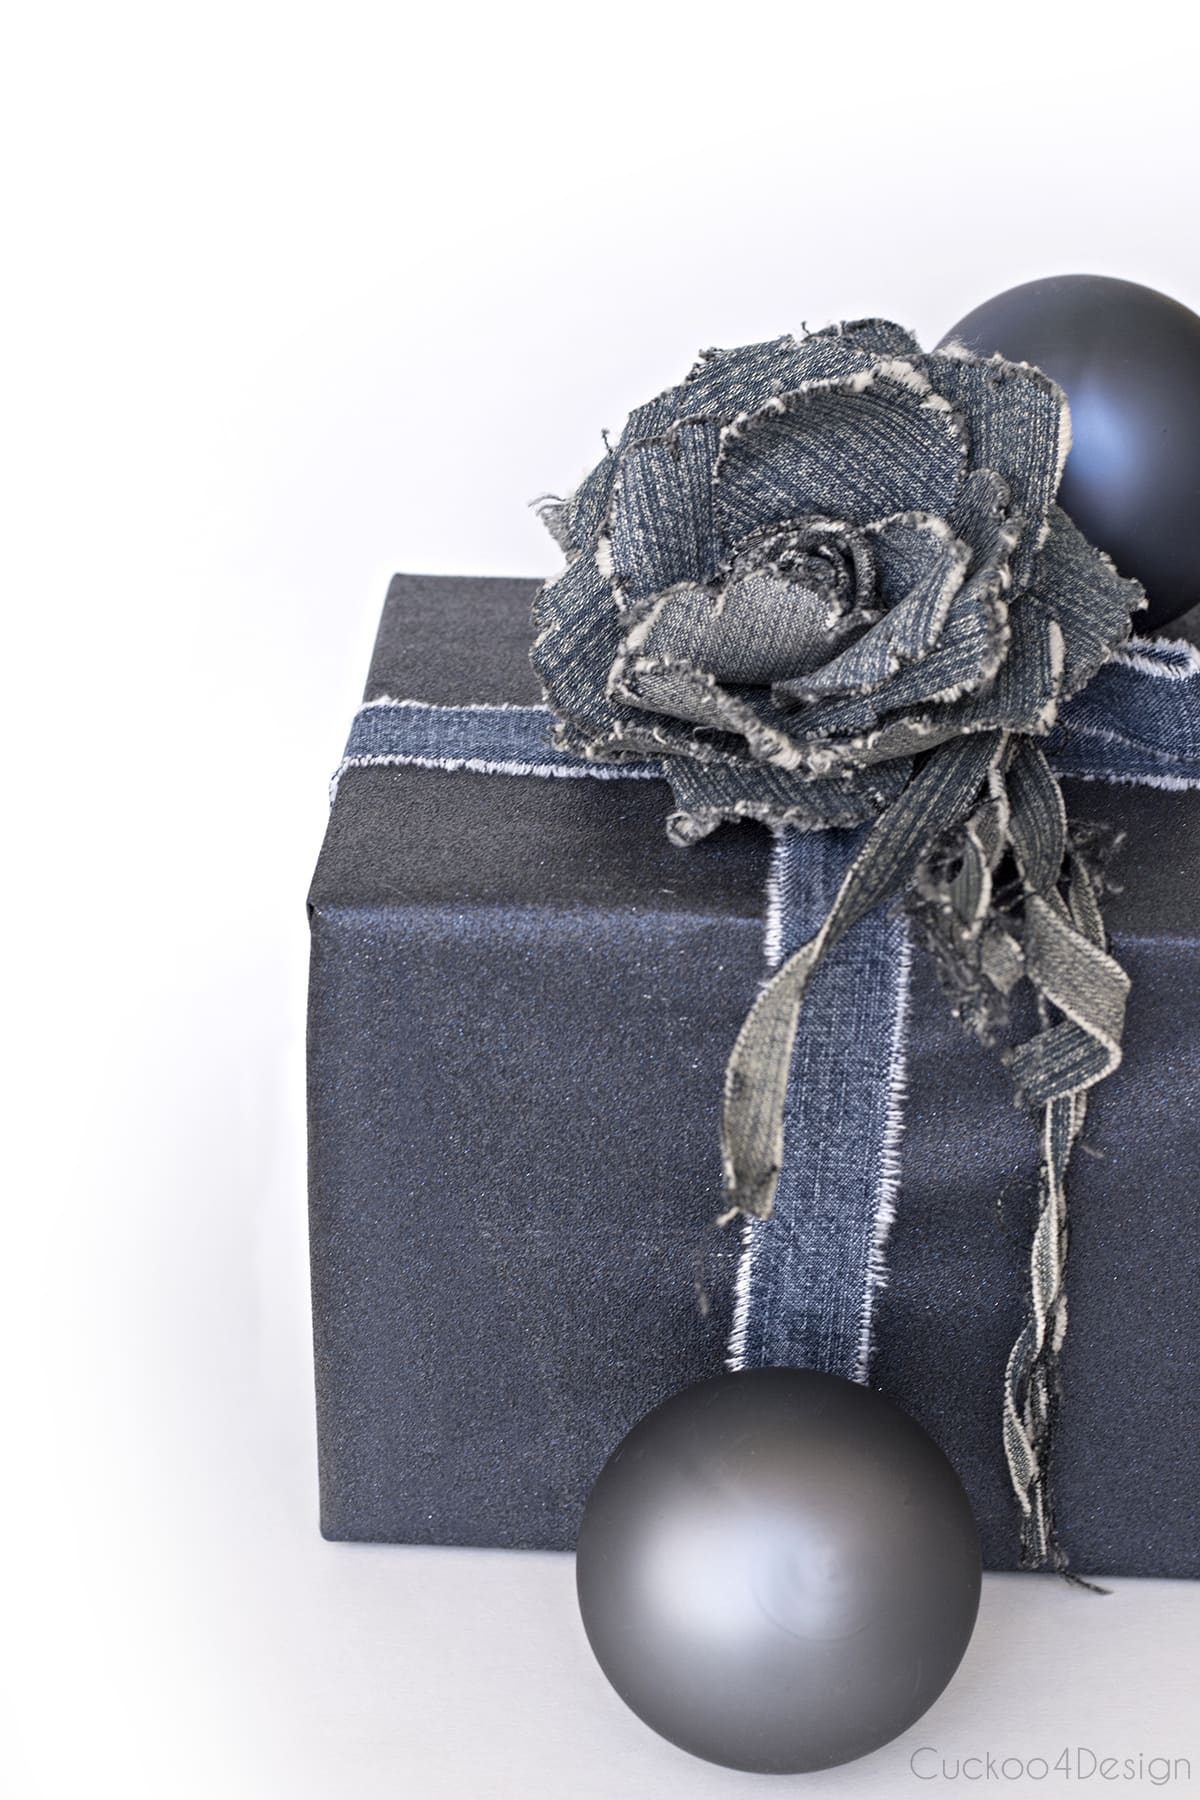 blue jeans gift wrapping idea